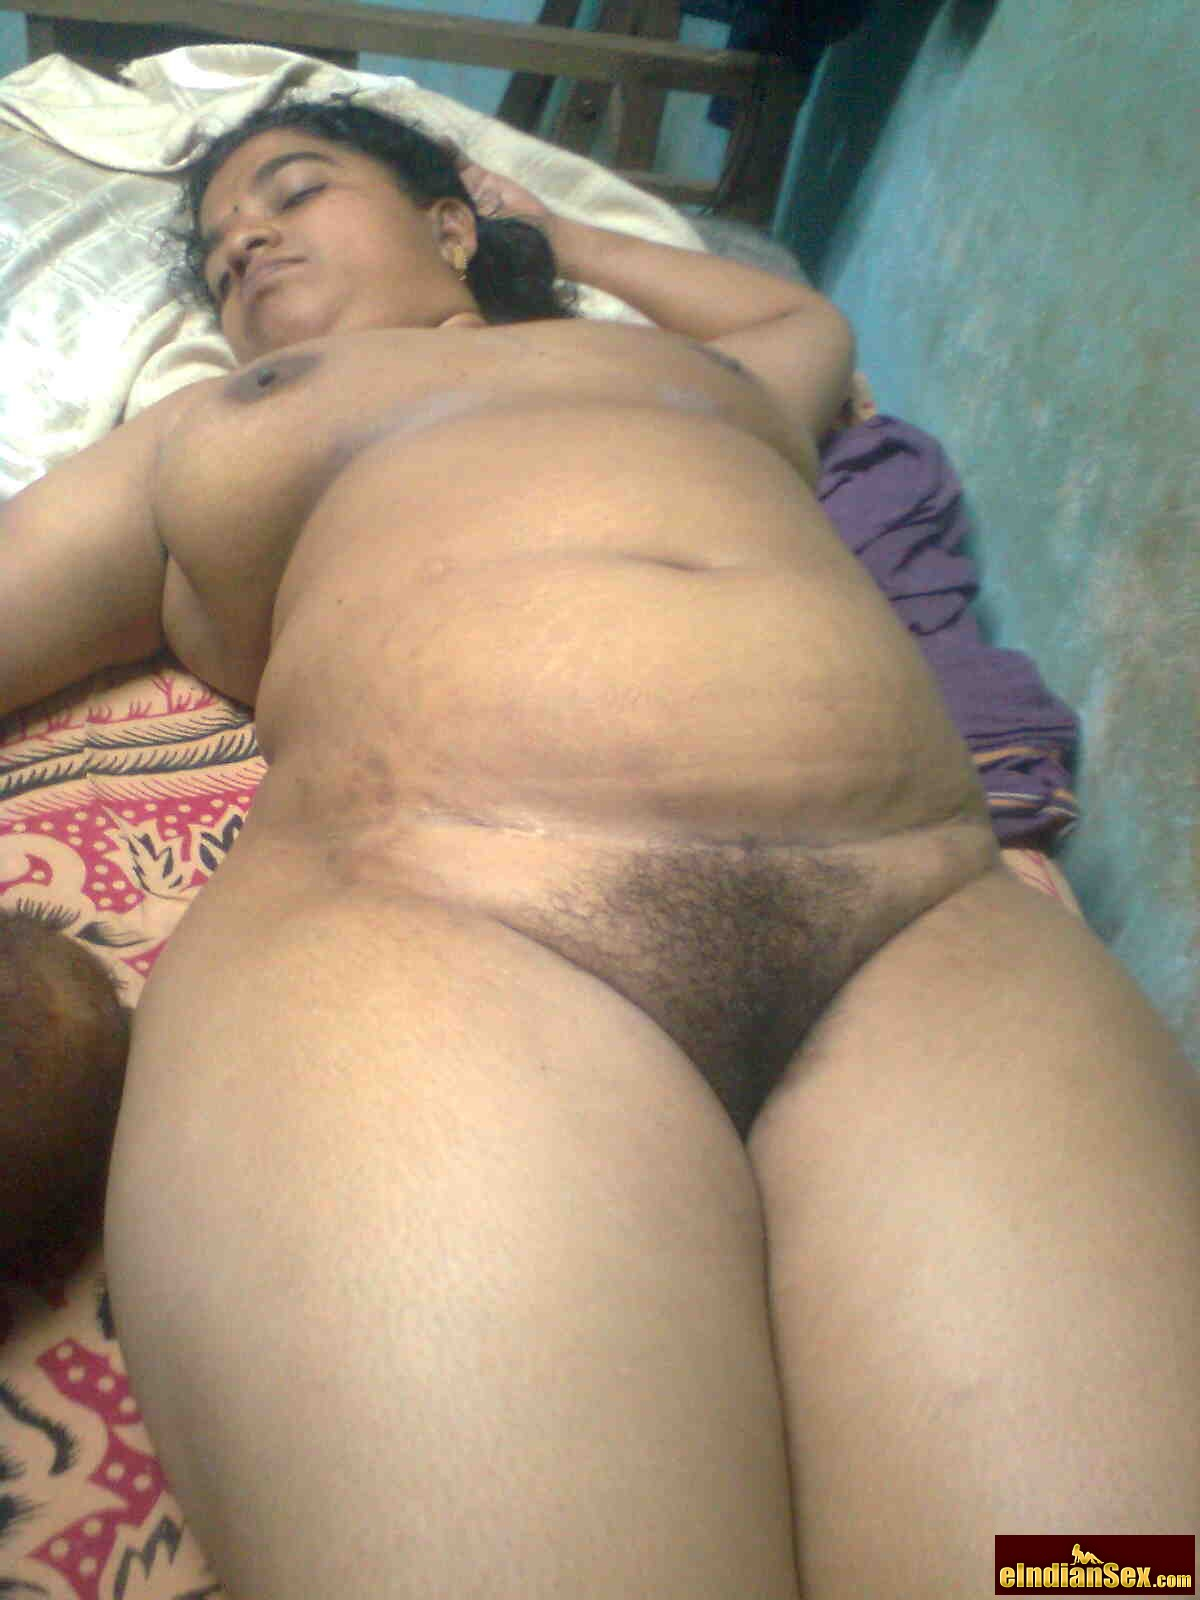 Girls see in sex malayalee are